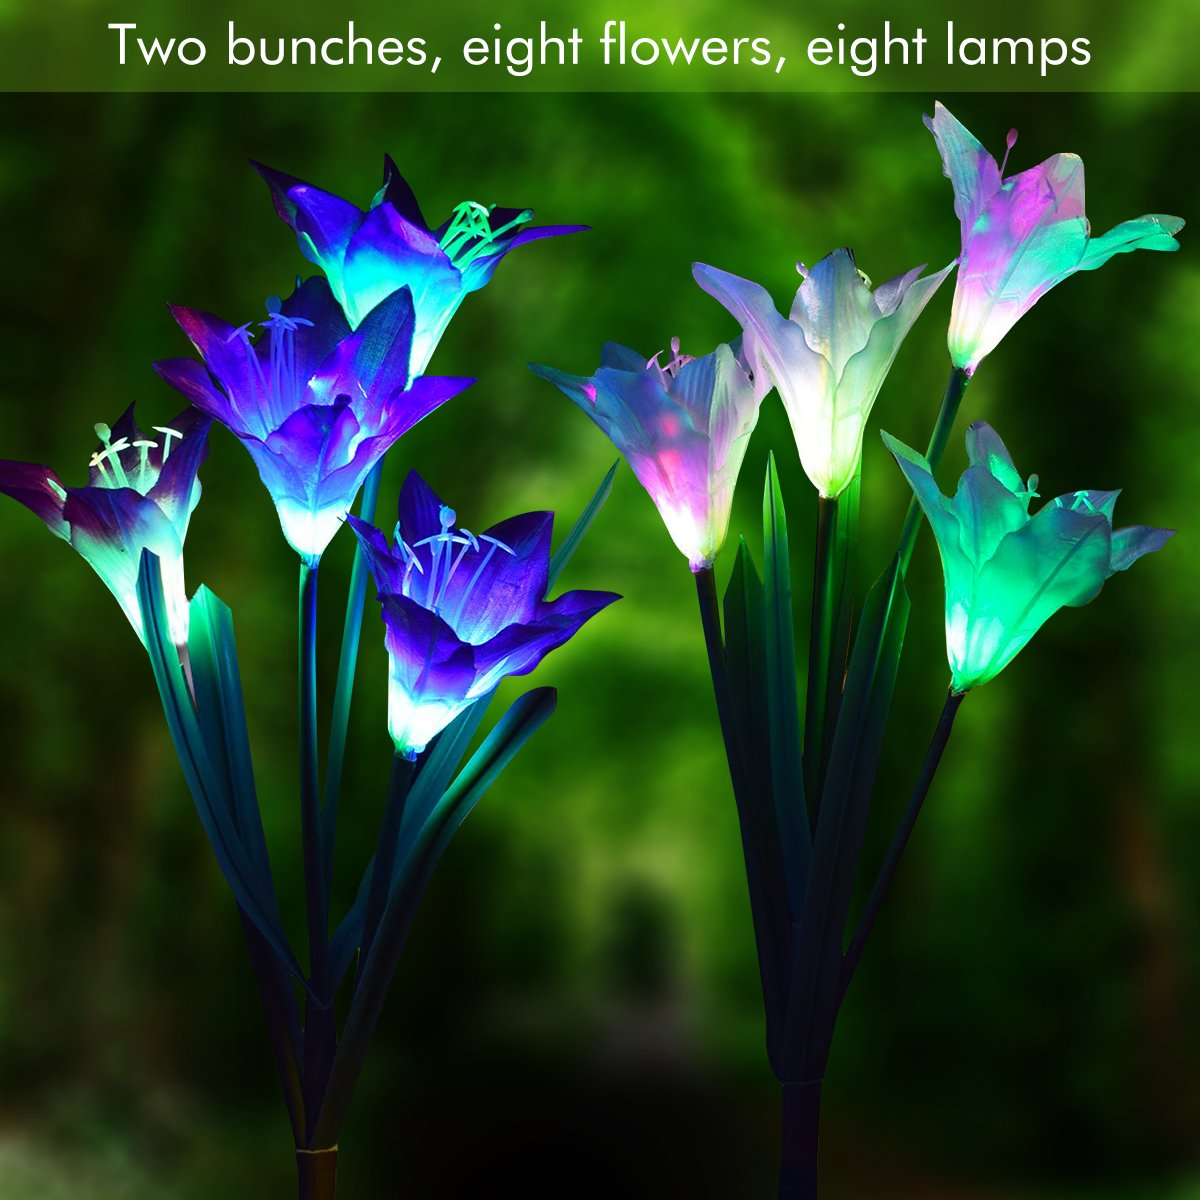 Padcod Outdoor Decorative Solar Garden Stake Lights 2 Pack Solar Powered Lights with 8-head Lily Flower, Multi-color Changing LED Lights for Garden, Patio, Backyard